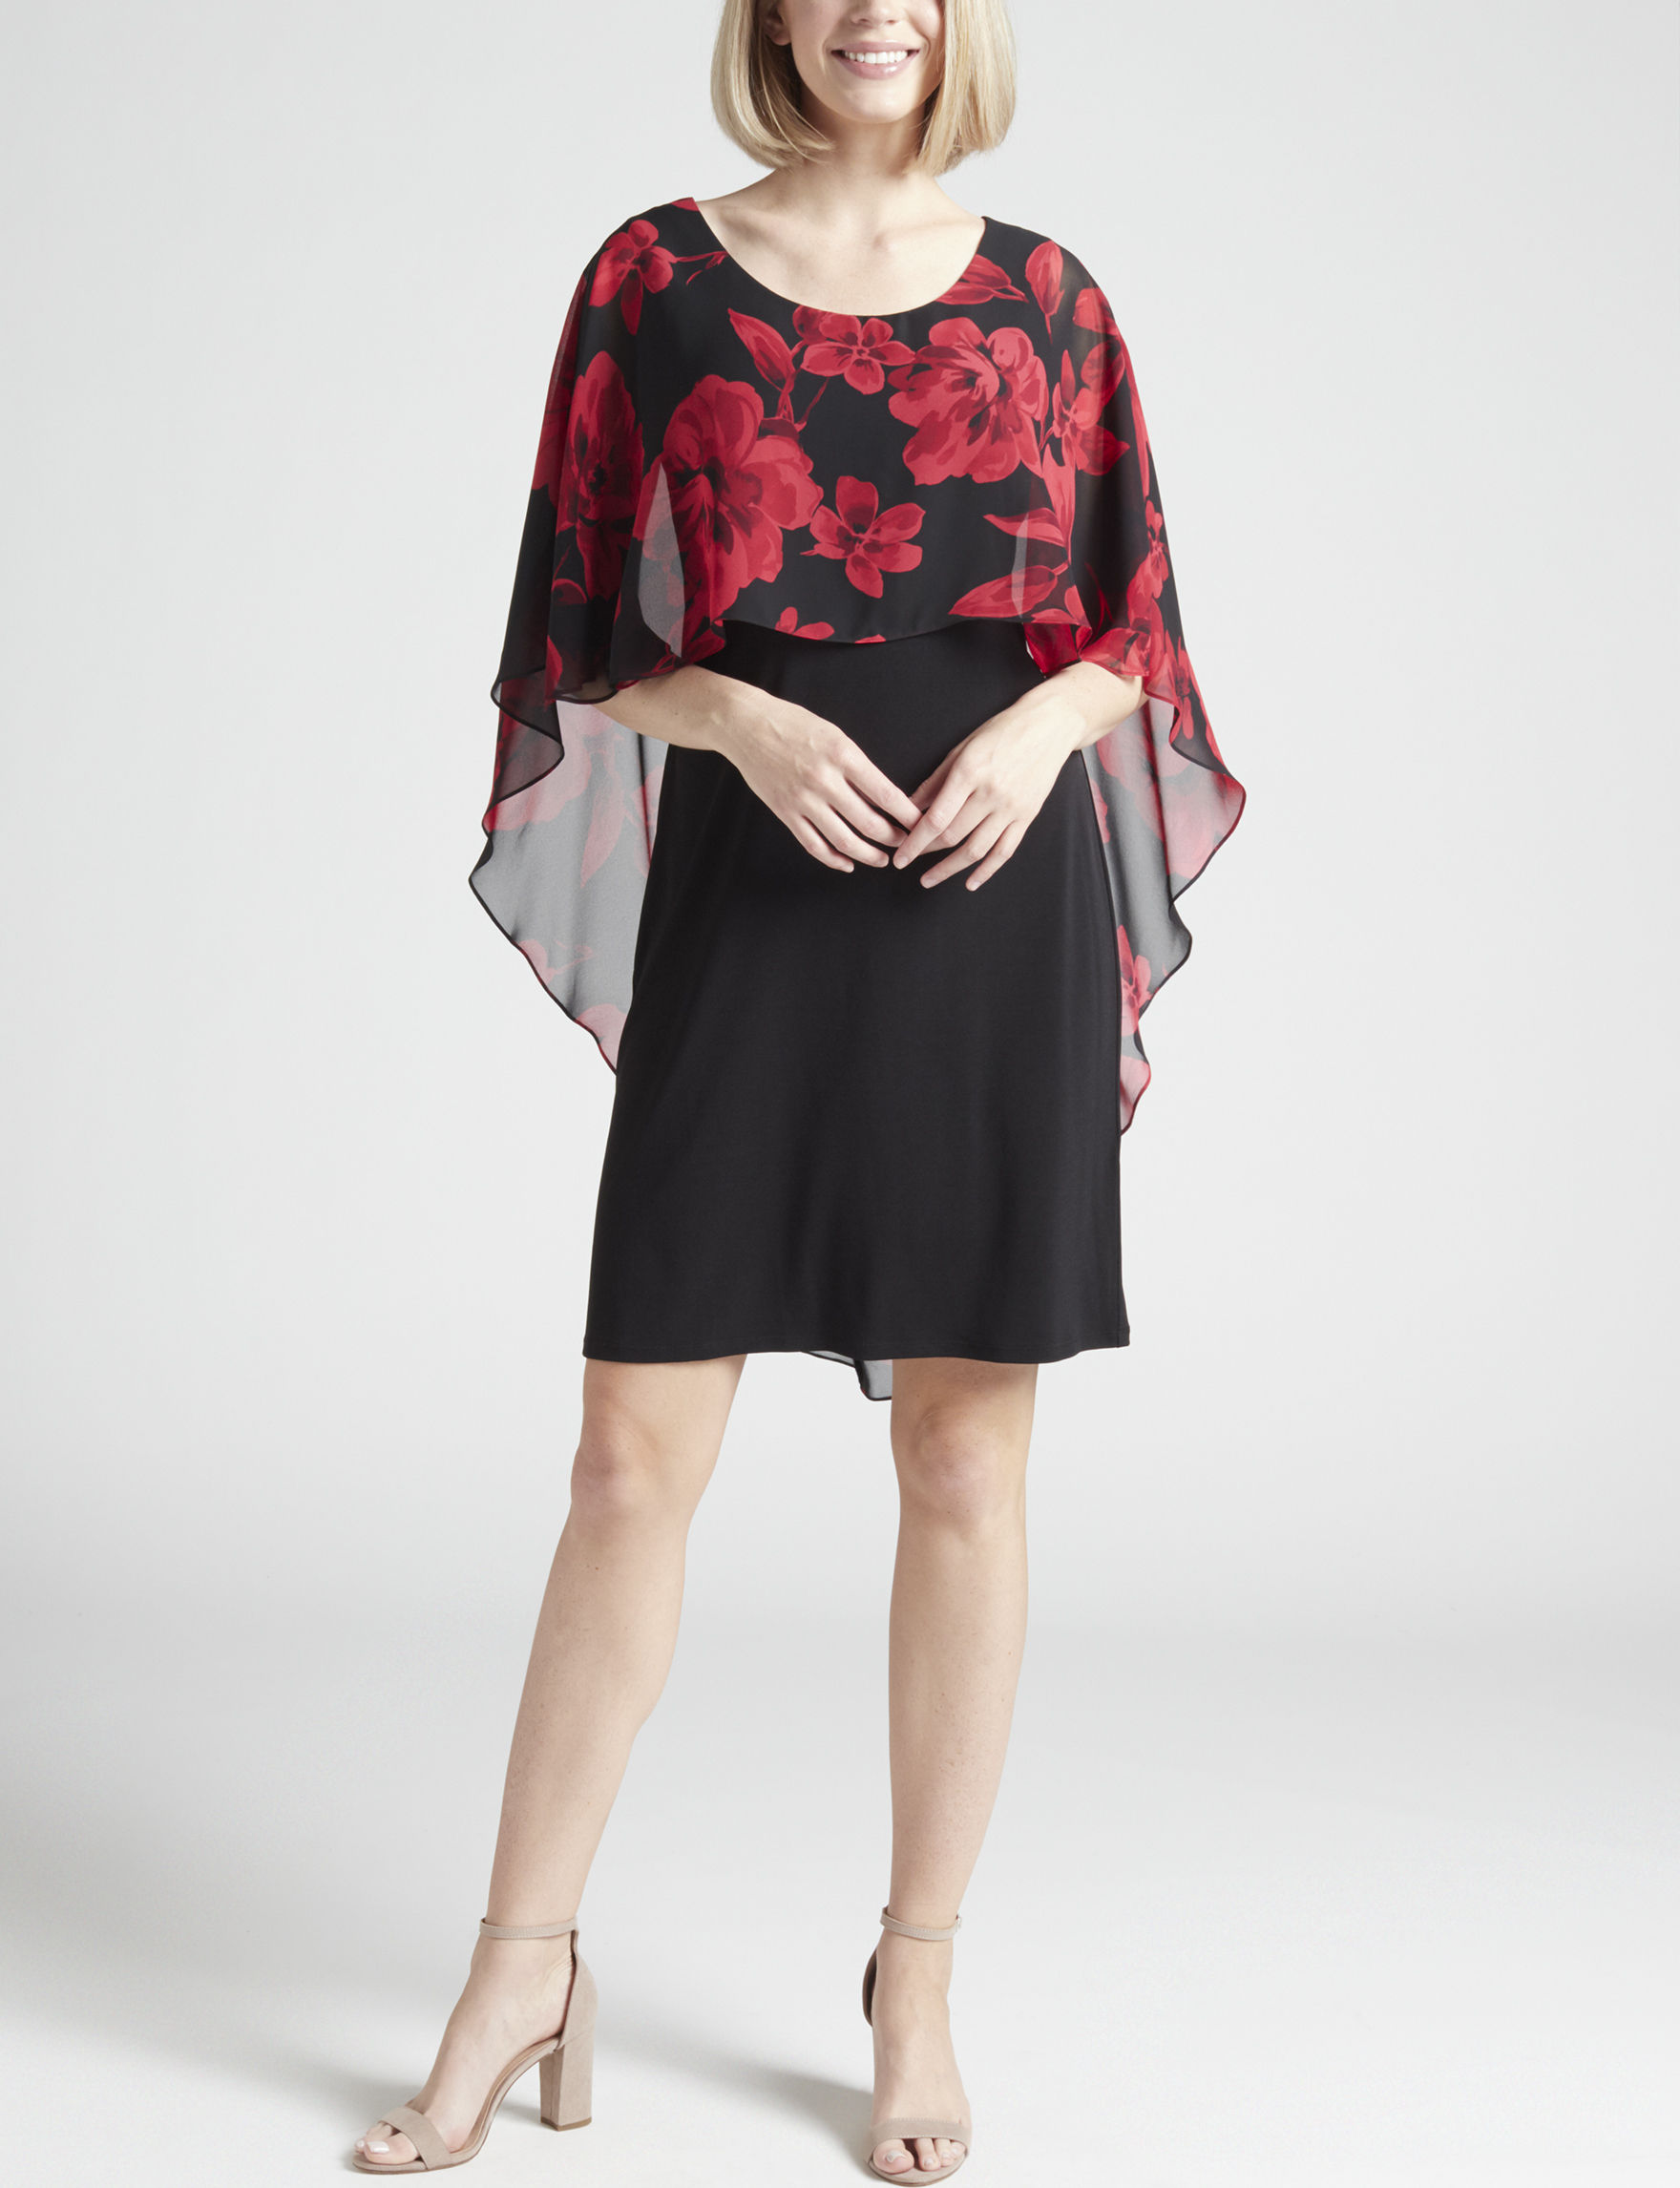 dc0548249124 Glamour Women's Chiffon Floral Poncho Dress | Stage Stores